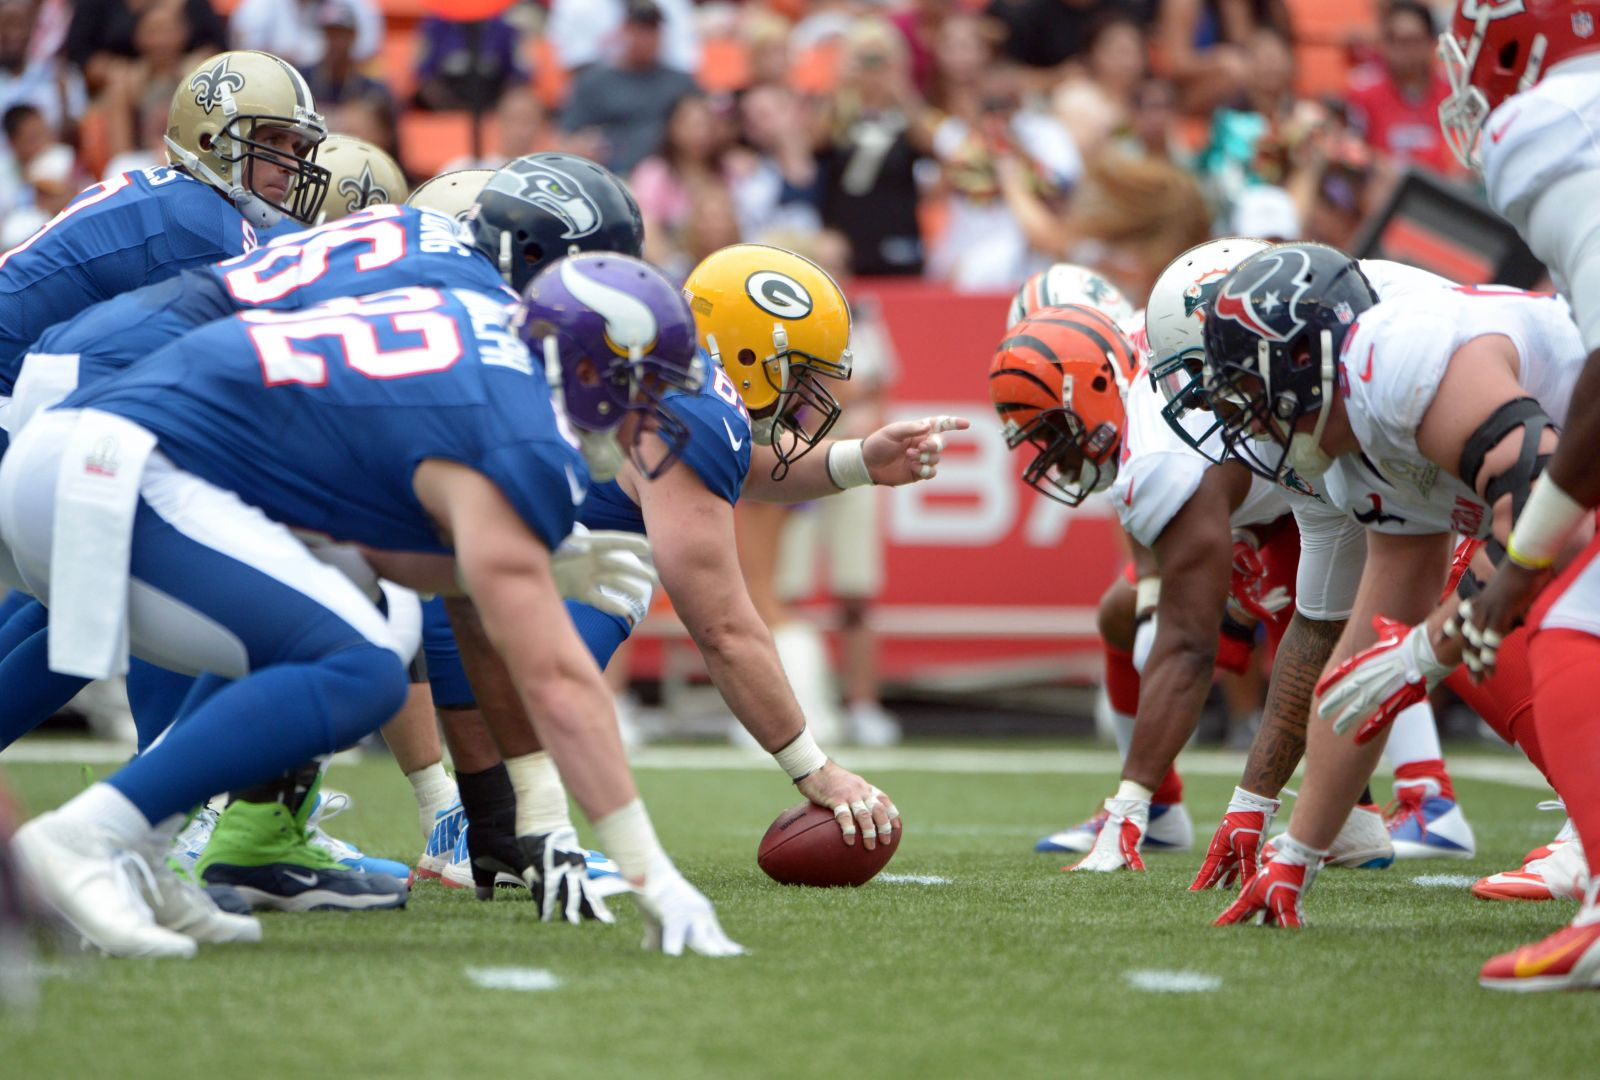 Pro Bowl Reportedly On Thin Ice This Given Sunday